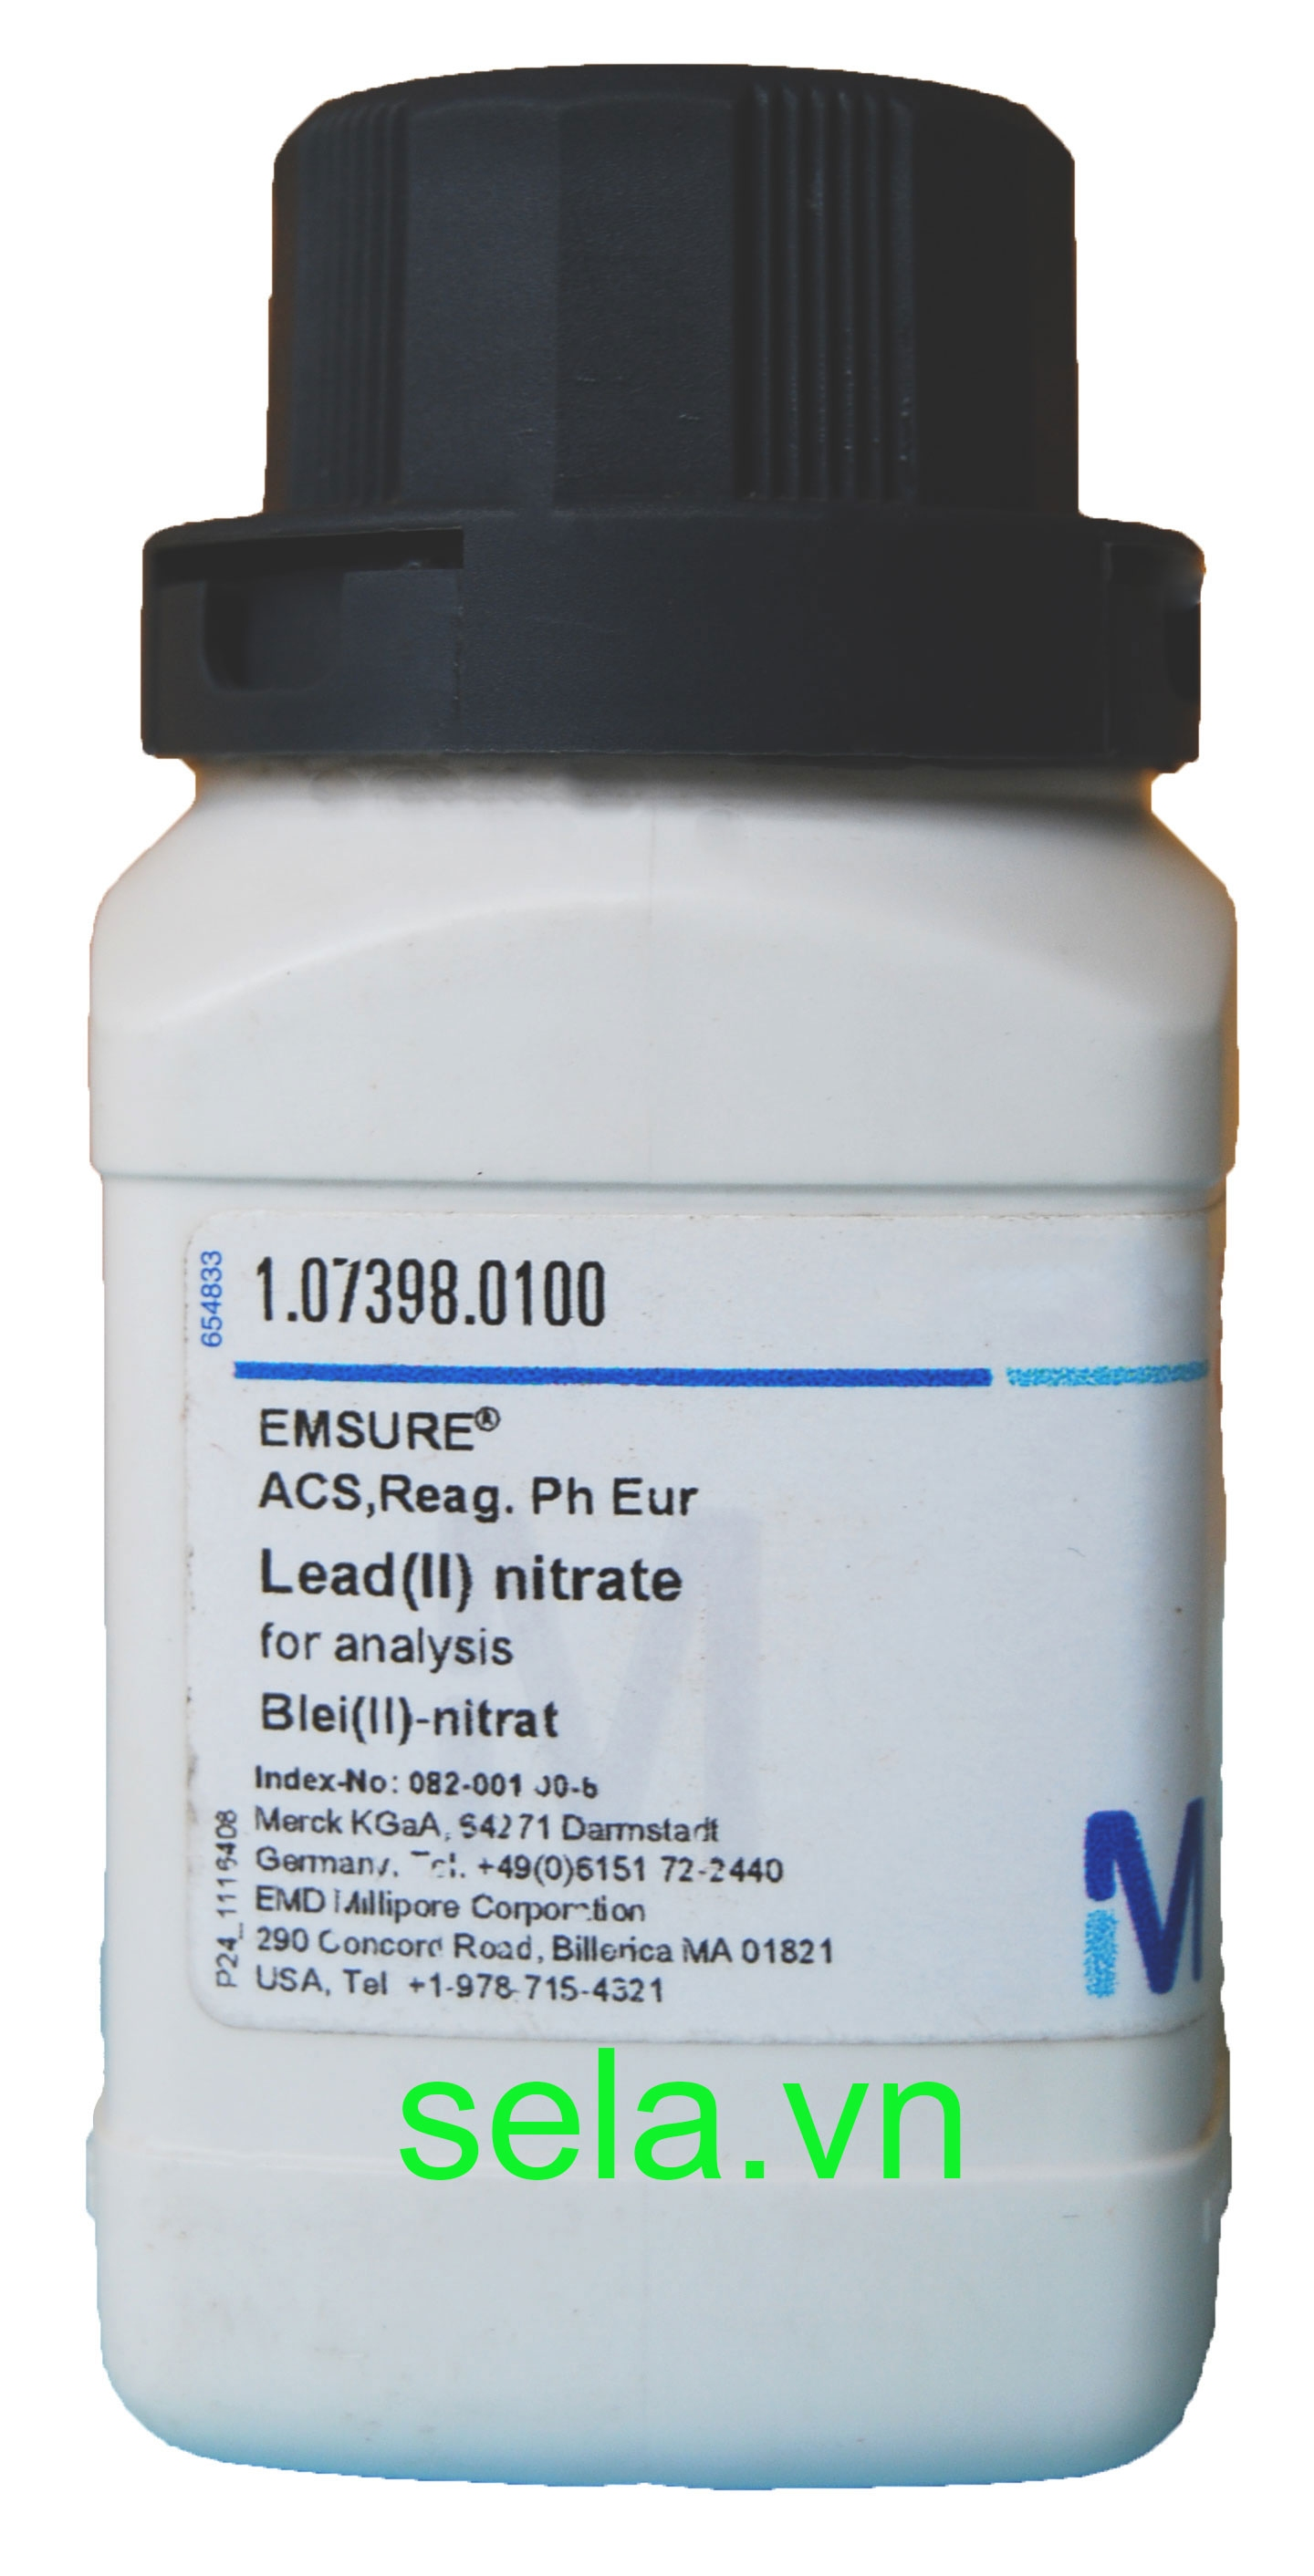 Lead(II) nitrate for analysis EMSURE® ACS,Reag. Ph Eur